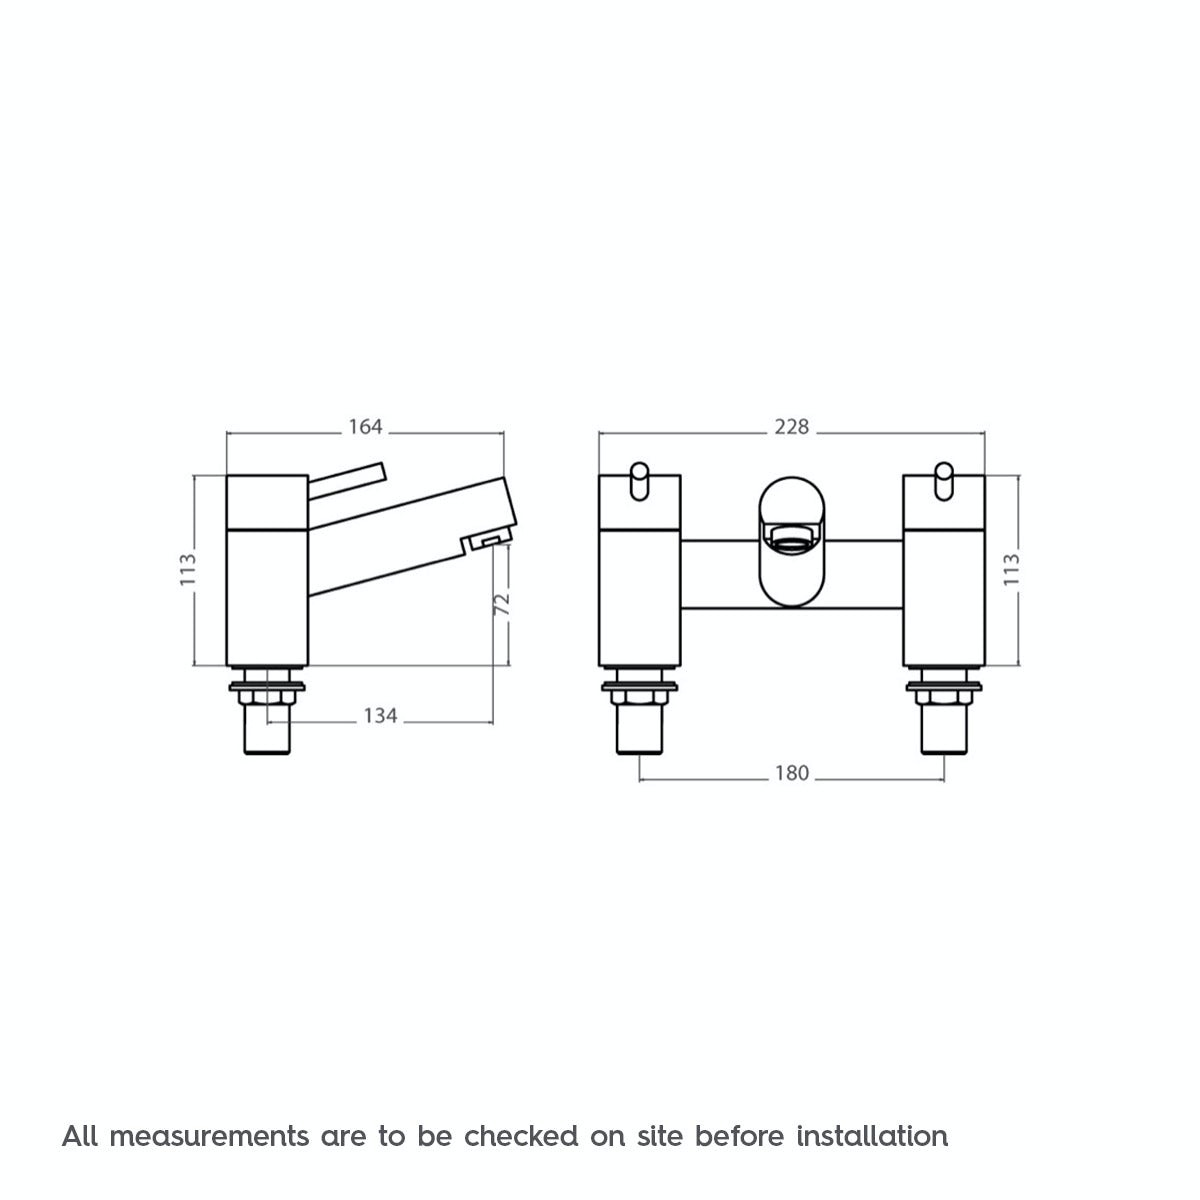 Dimensions for Matrix bath mixer tap